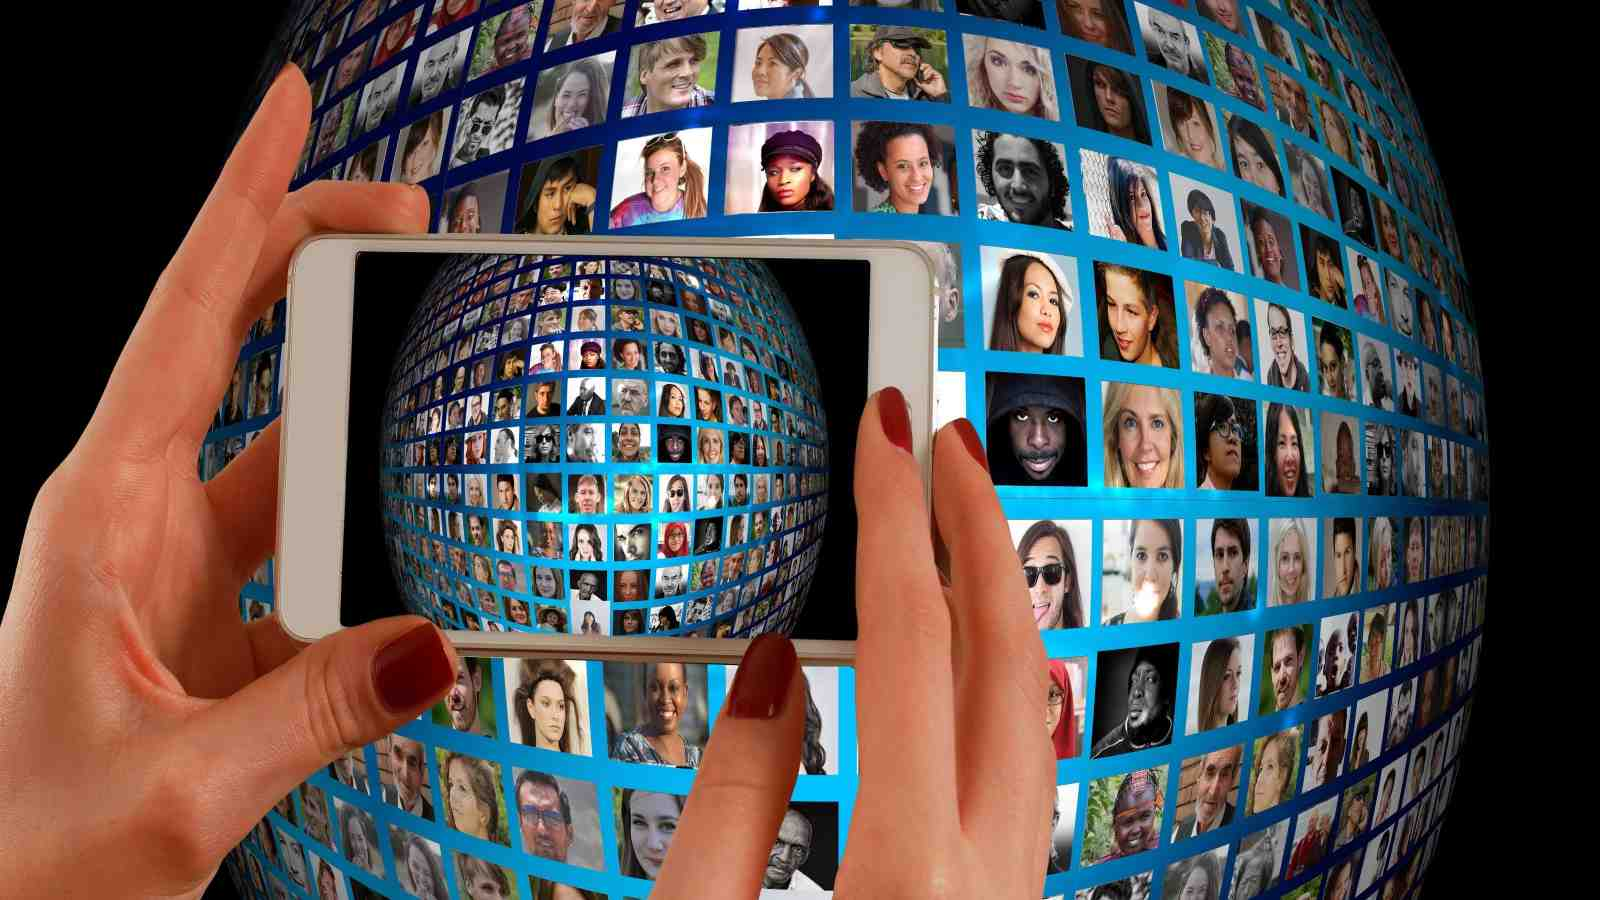 Cellphone camera viewing network of faces